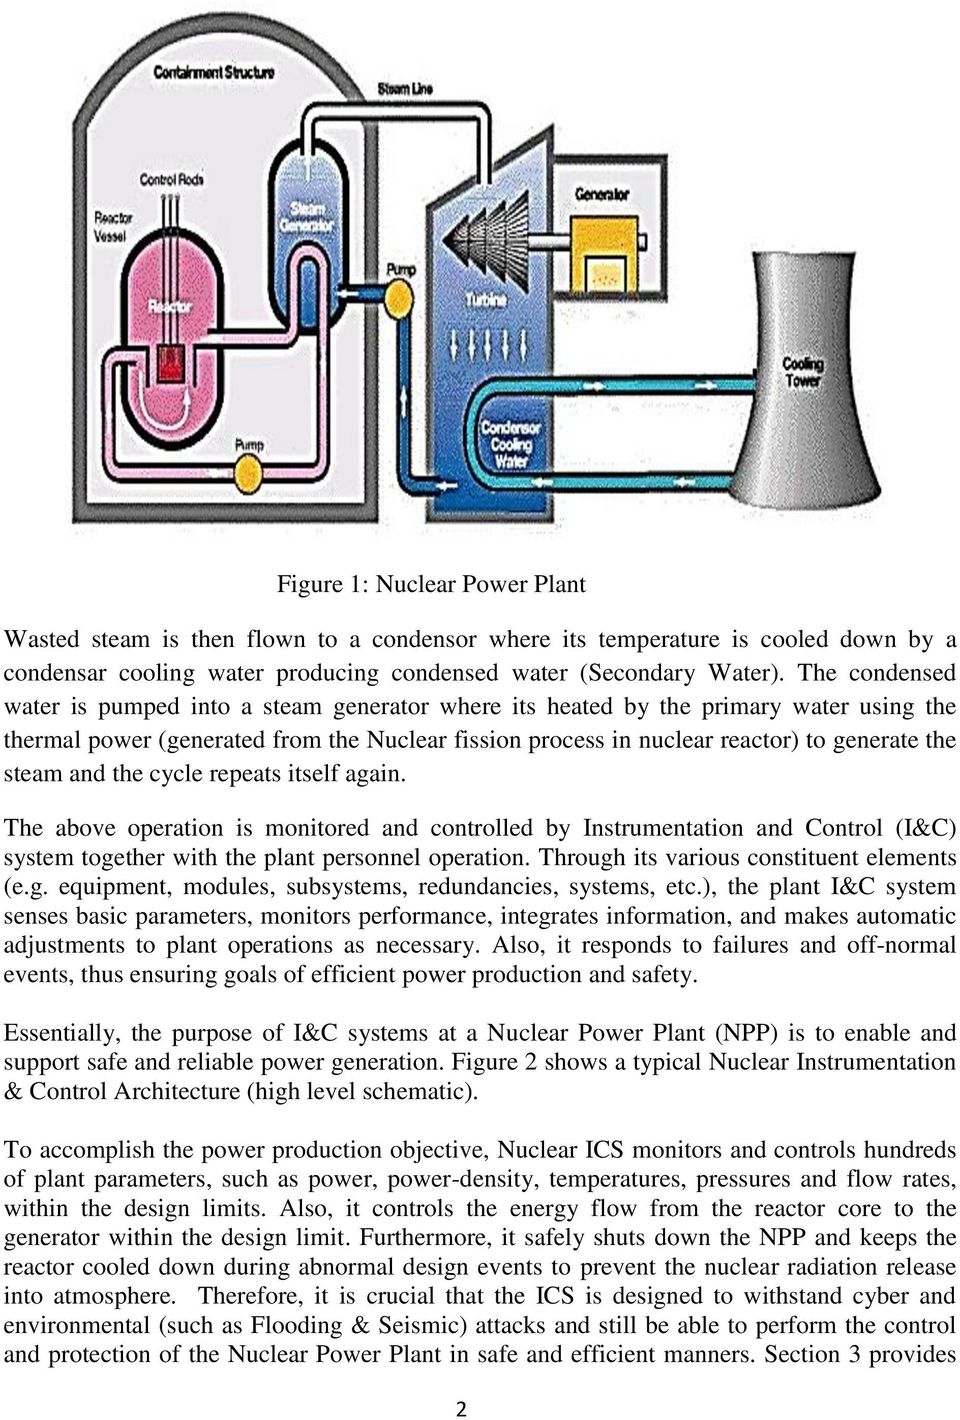 Cyber Security Design Methodology For Nuclear Power Control Plant Schematic Diagram Steam And The Cycle Repeats Itself Again Above Operation Is Monitored Controlled By